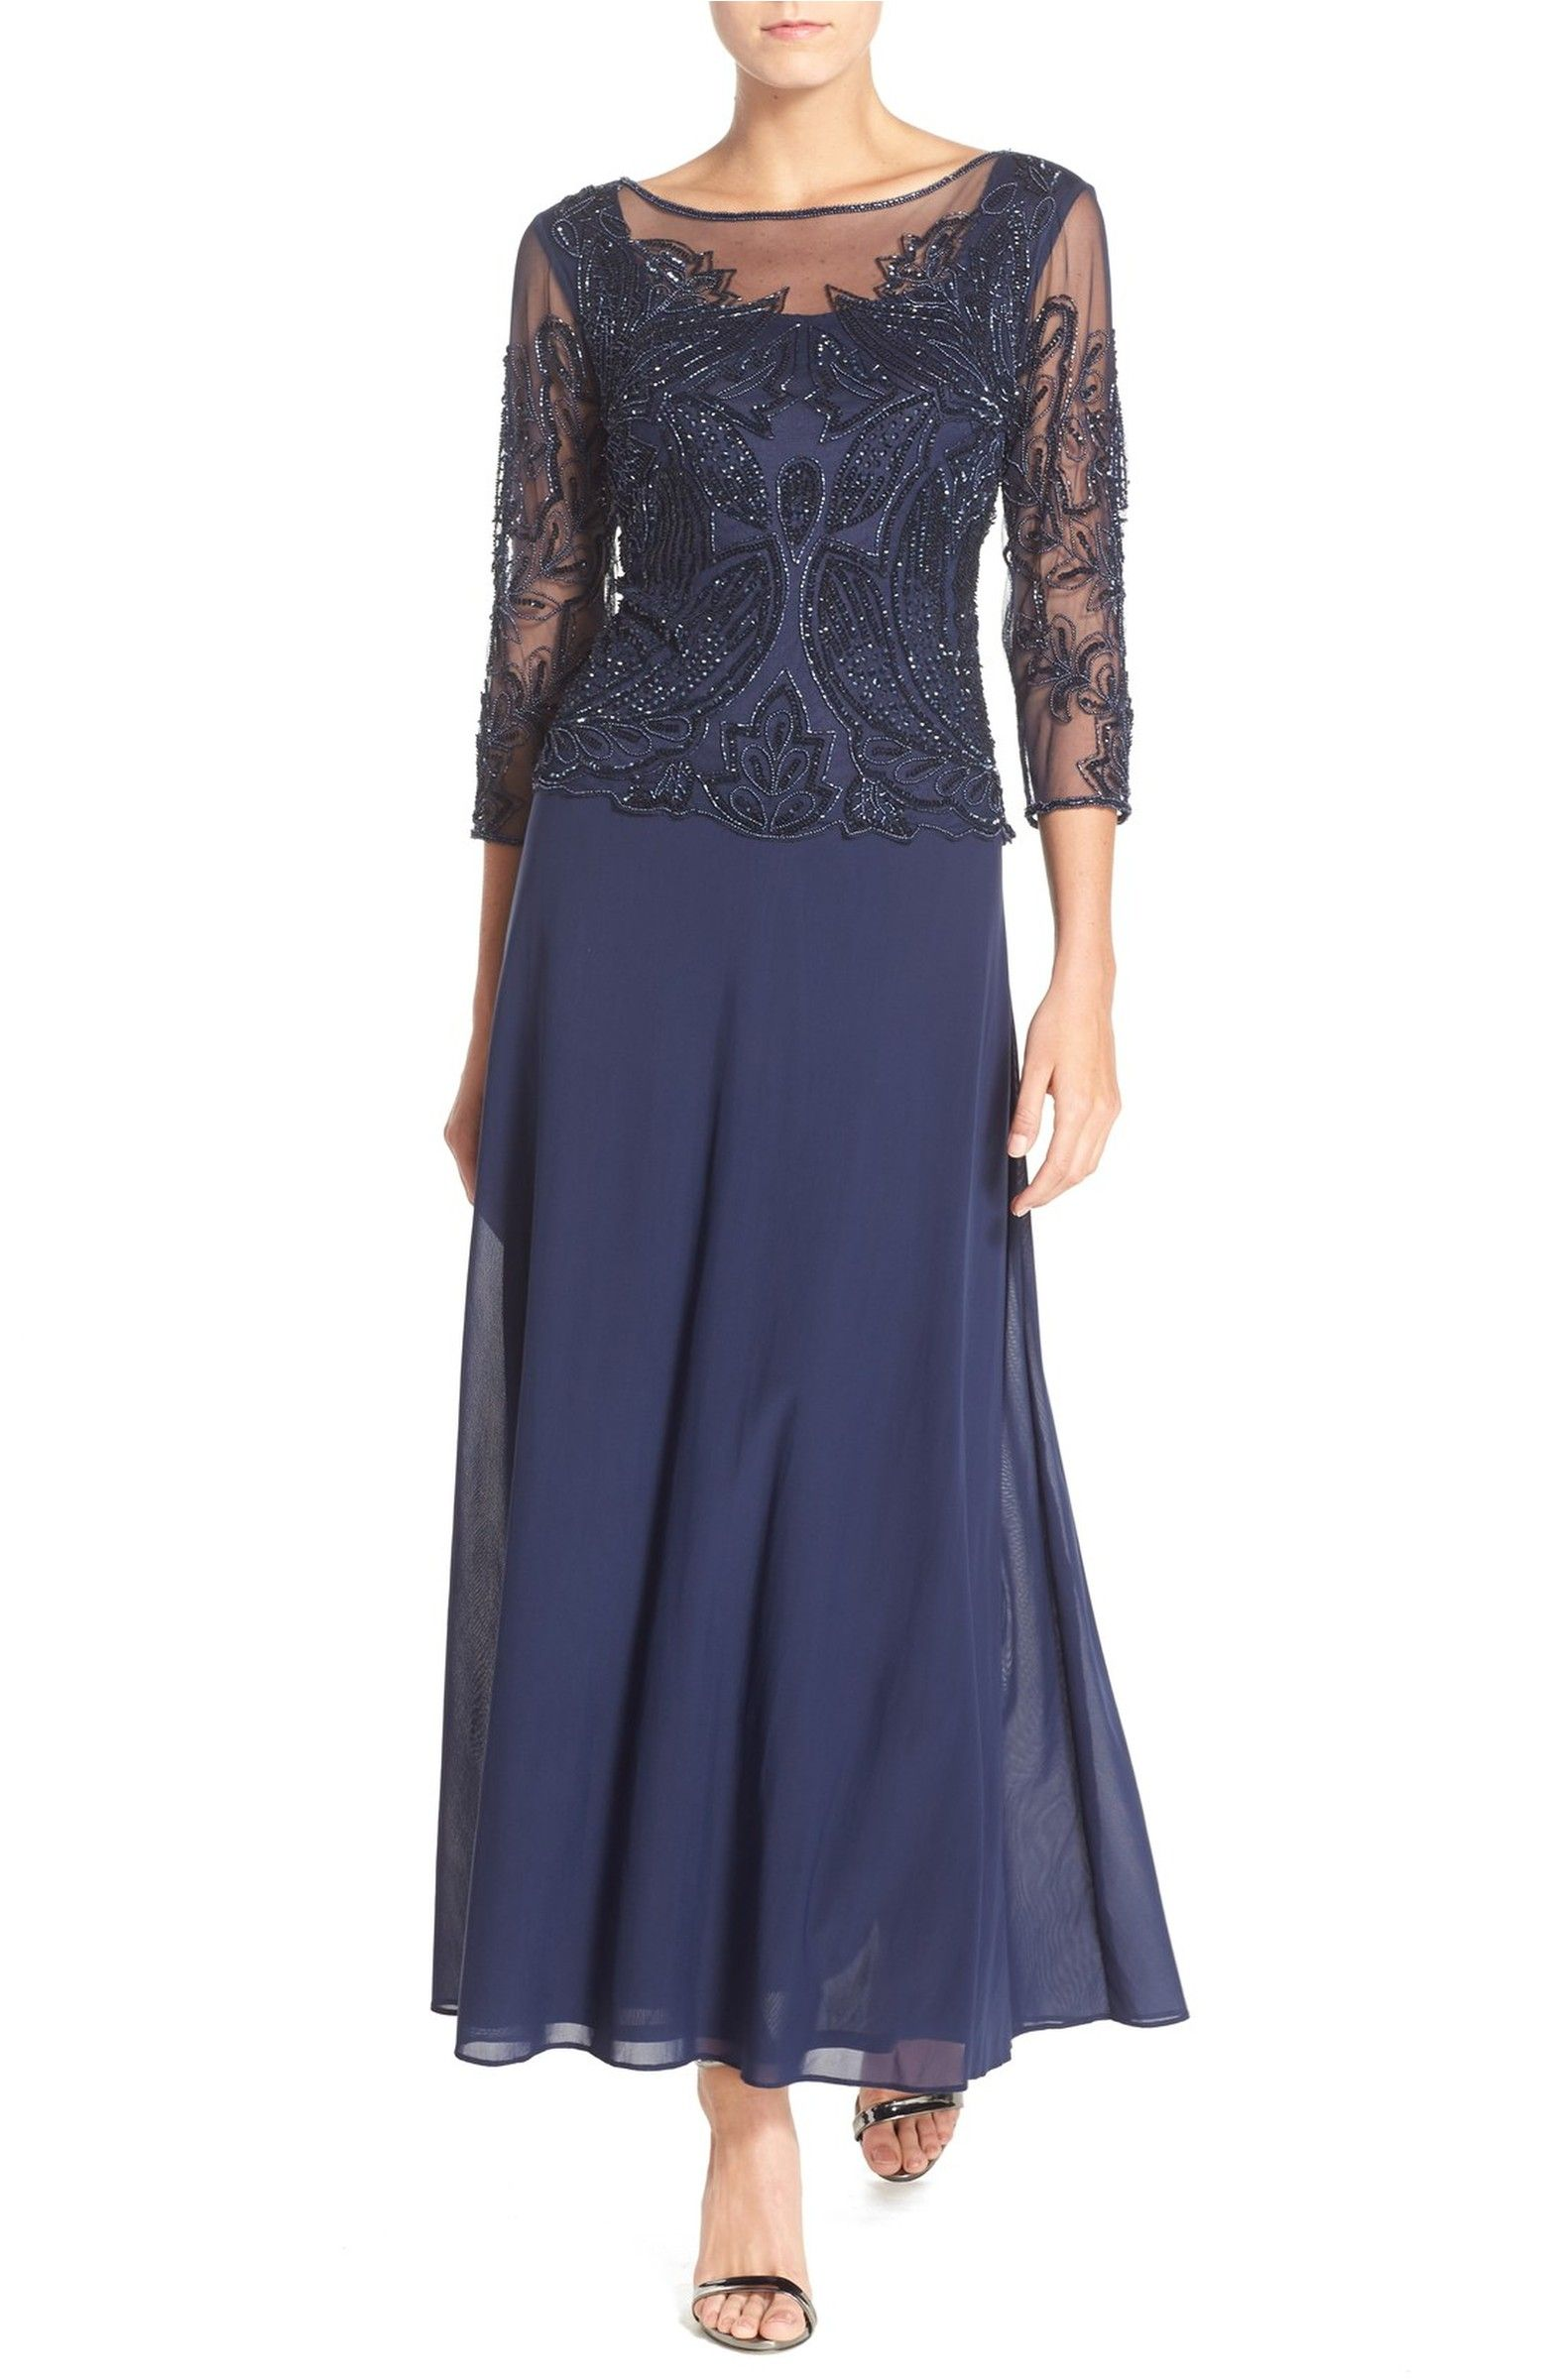 Mother wedding dresses petite  Embellished Mesh Gown  Petite Gowns and Bride dresses